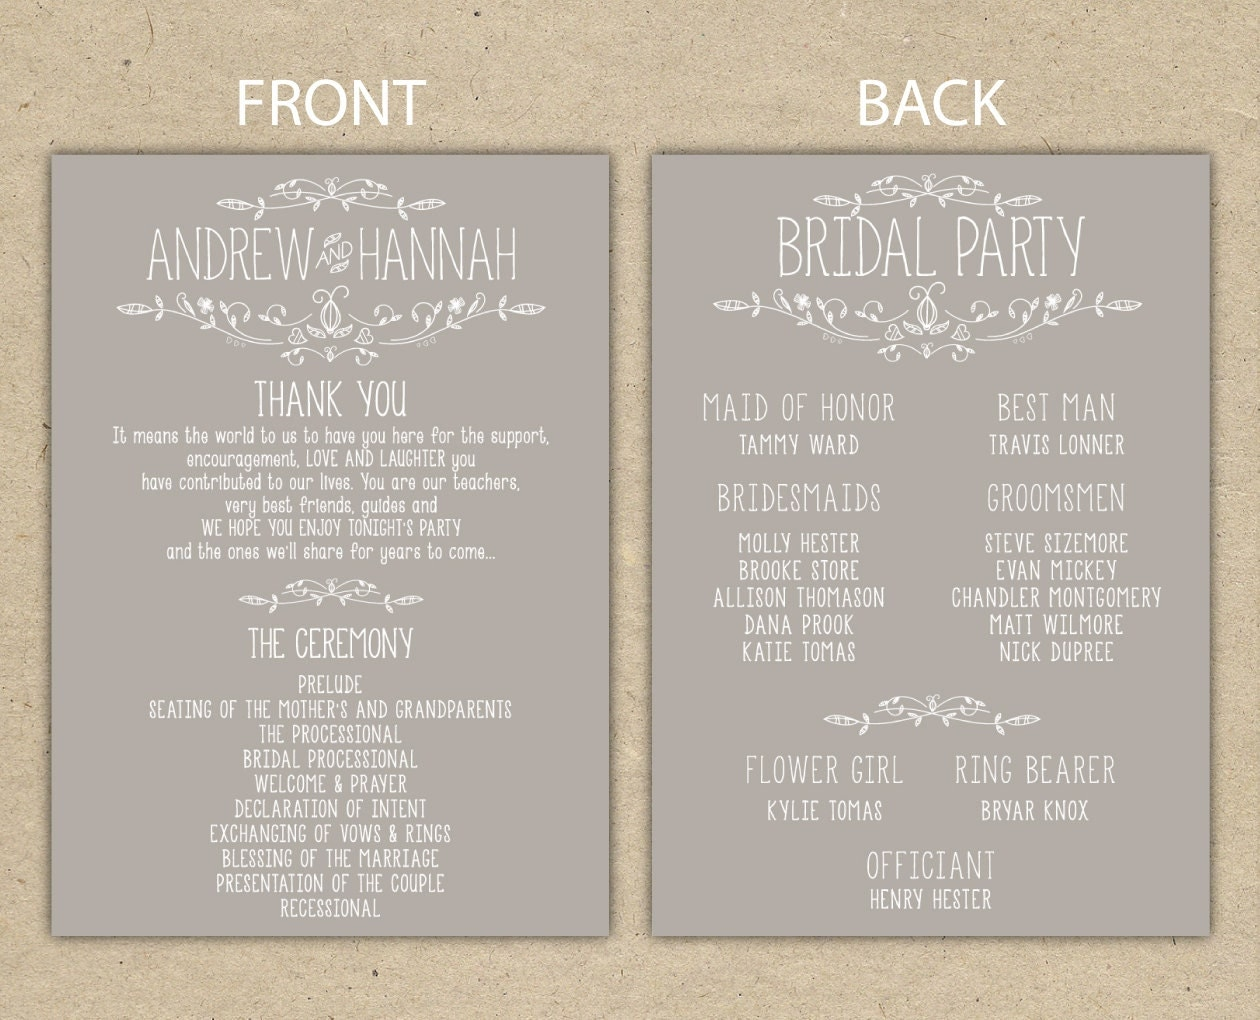 wedding program wedding reception wedding thank you. Black Bedroom Furniture Sets. Home Design Ideas